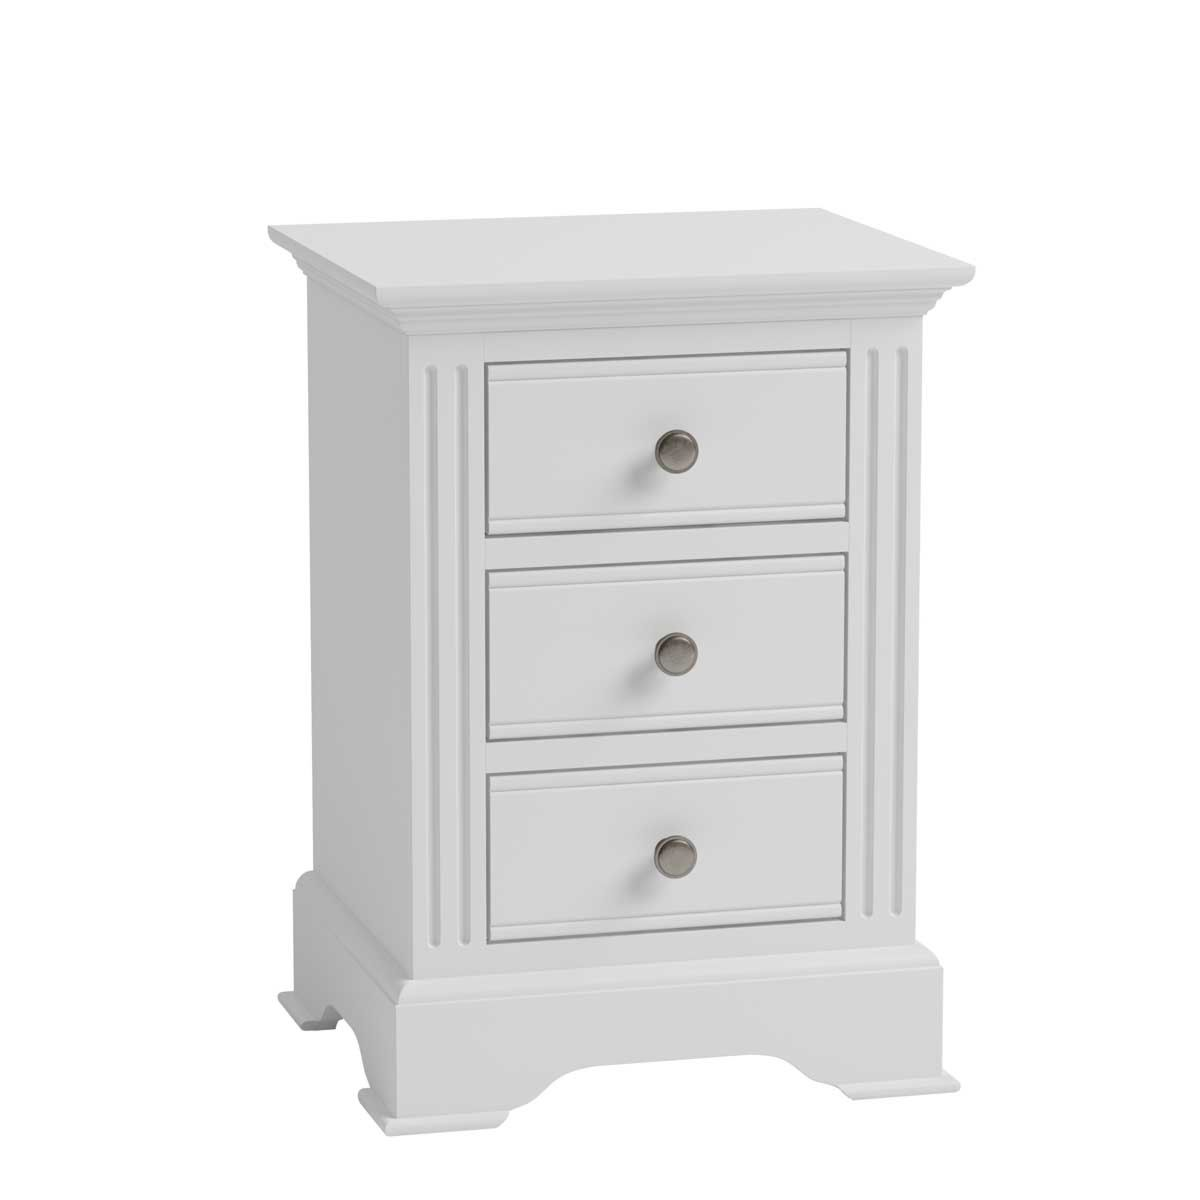 Bingley Large Bedside Cabinet - White